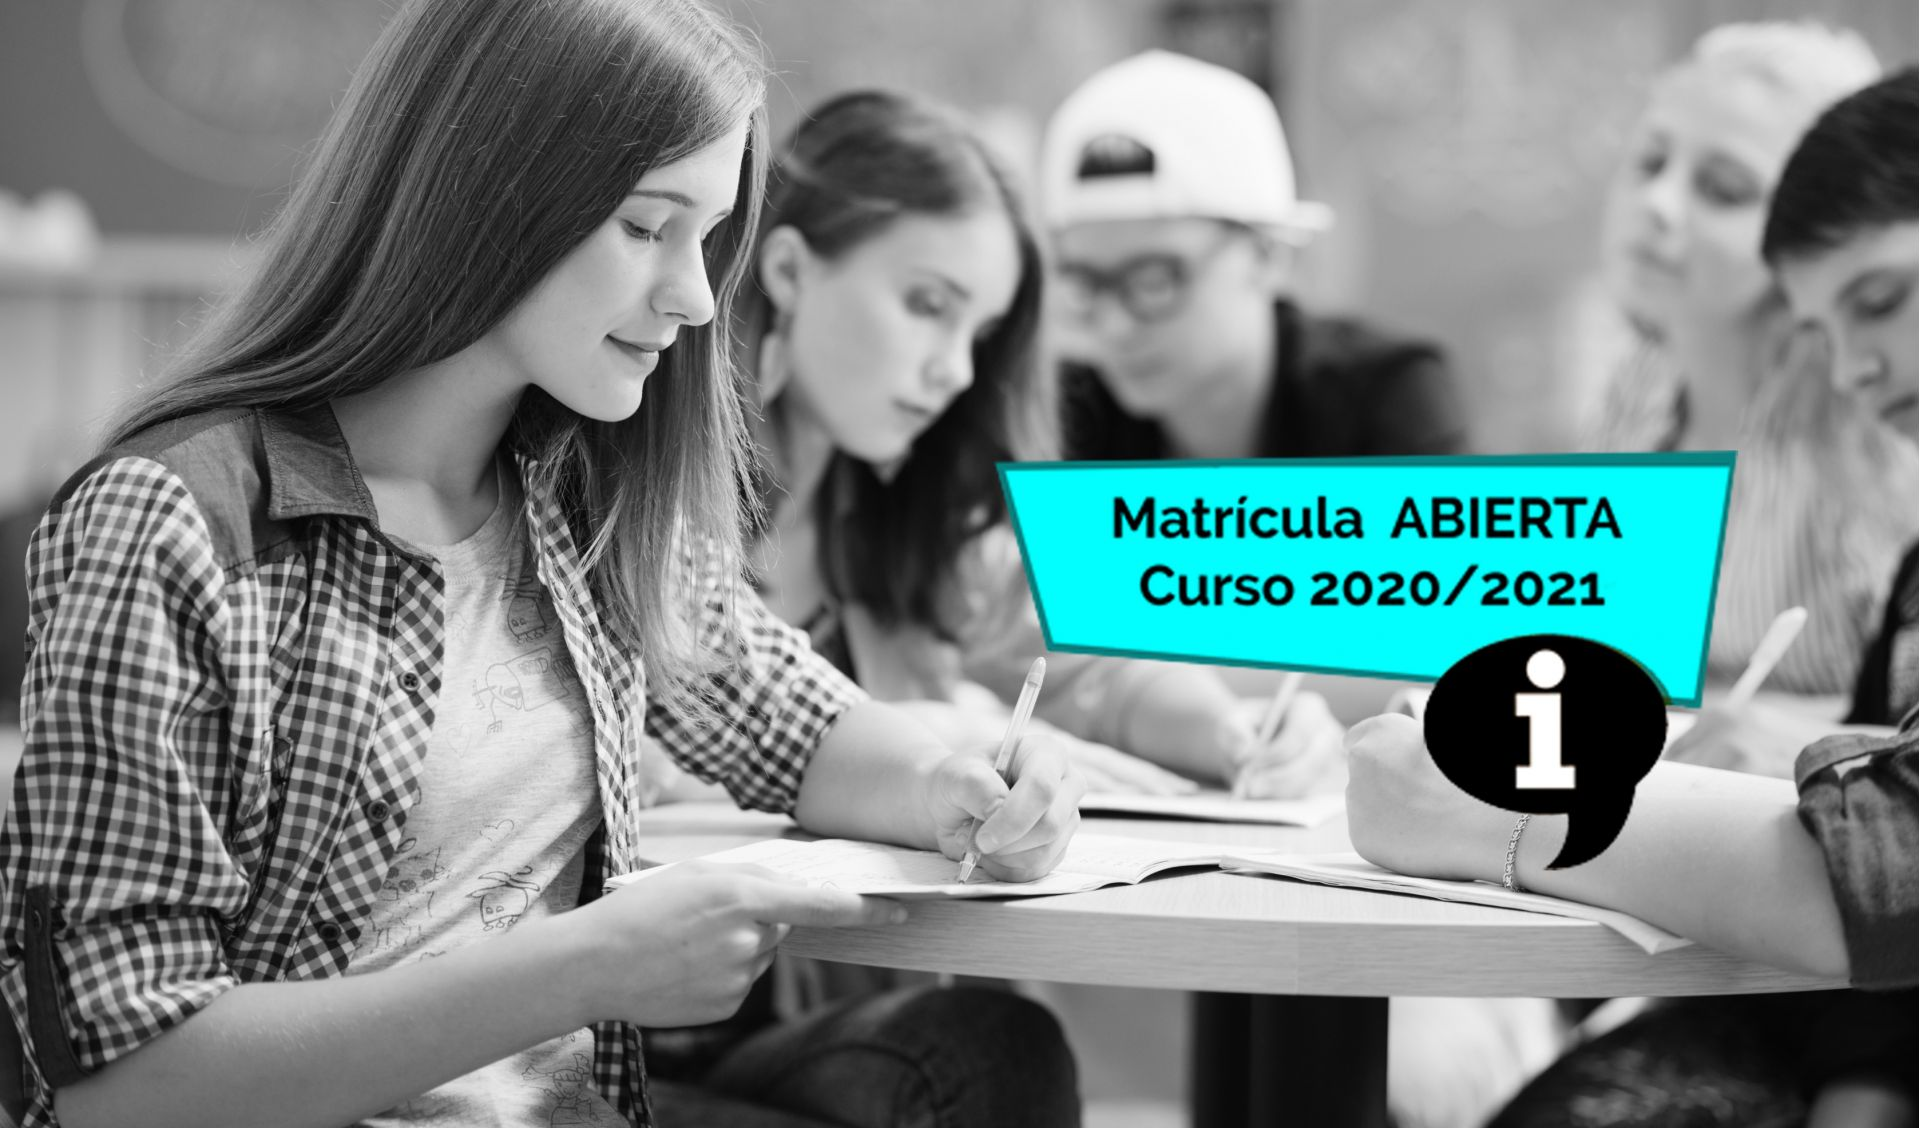 https://escuela-europea.com/resources/slides/slide-1-matricula-abierta.jpg